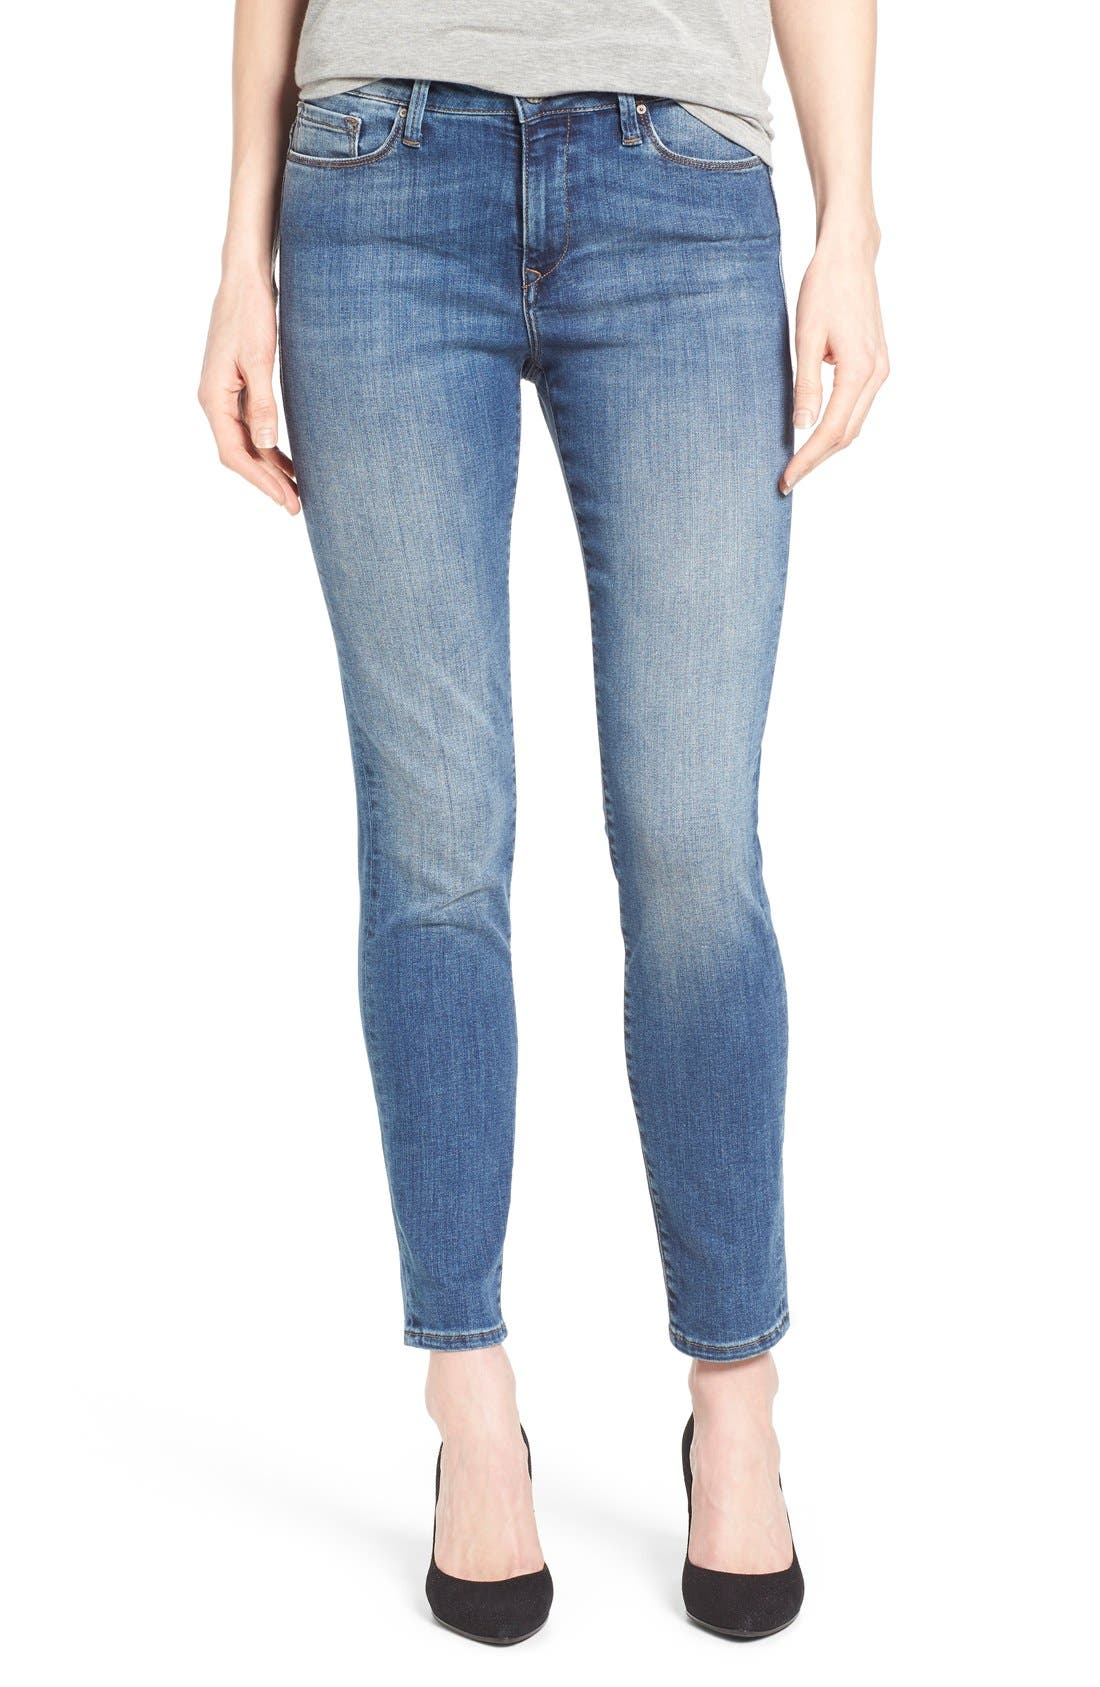 'Alissa' Stretch Slim Ankle Jeans,                             Main thumbnail 1, color,                             Light Blue